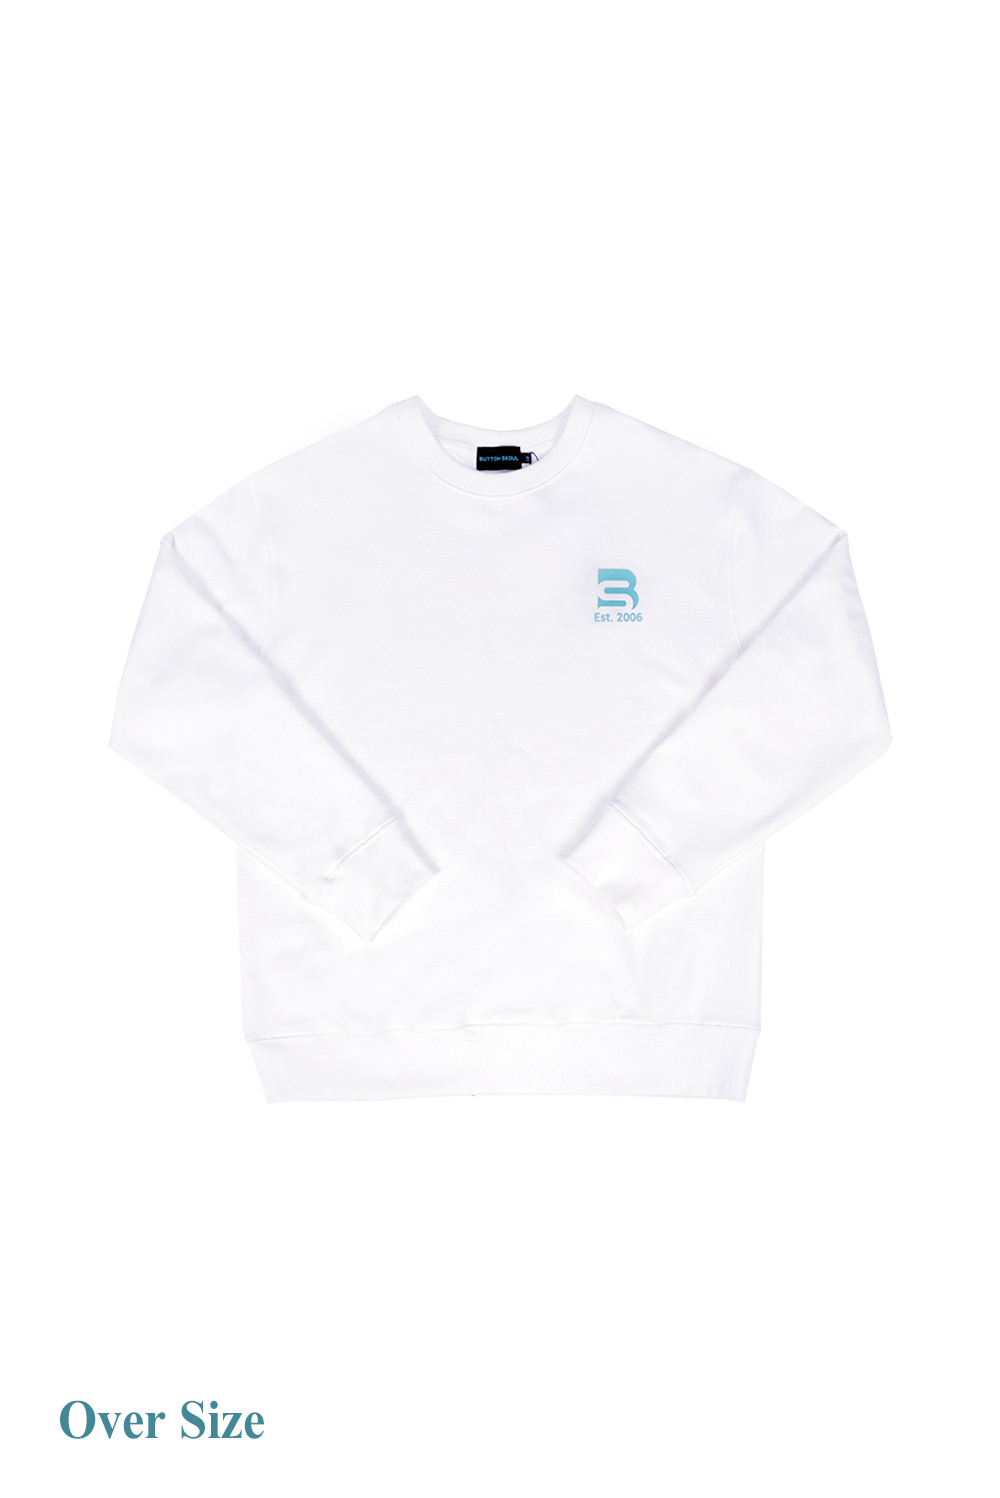 Oversize Logo Man to Man (White)